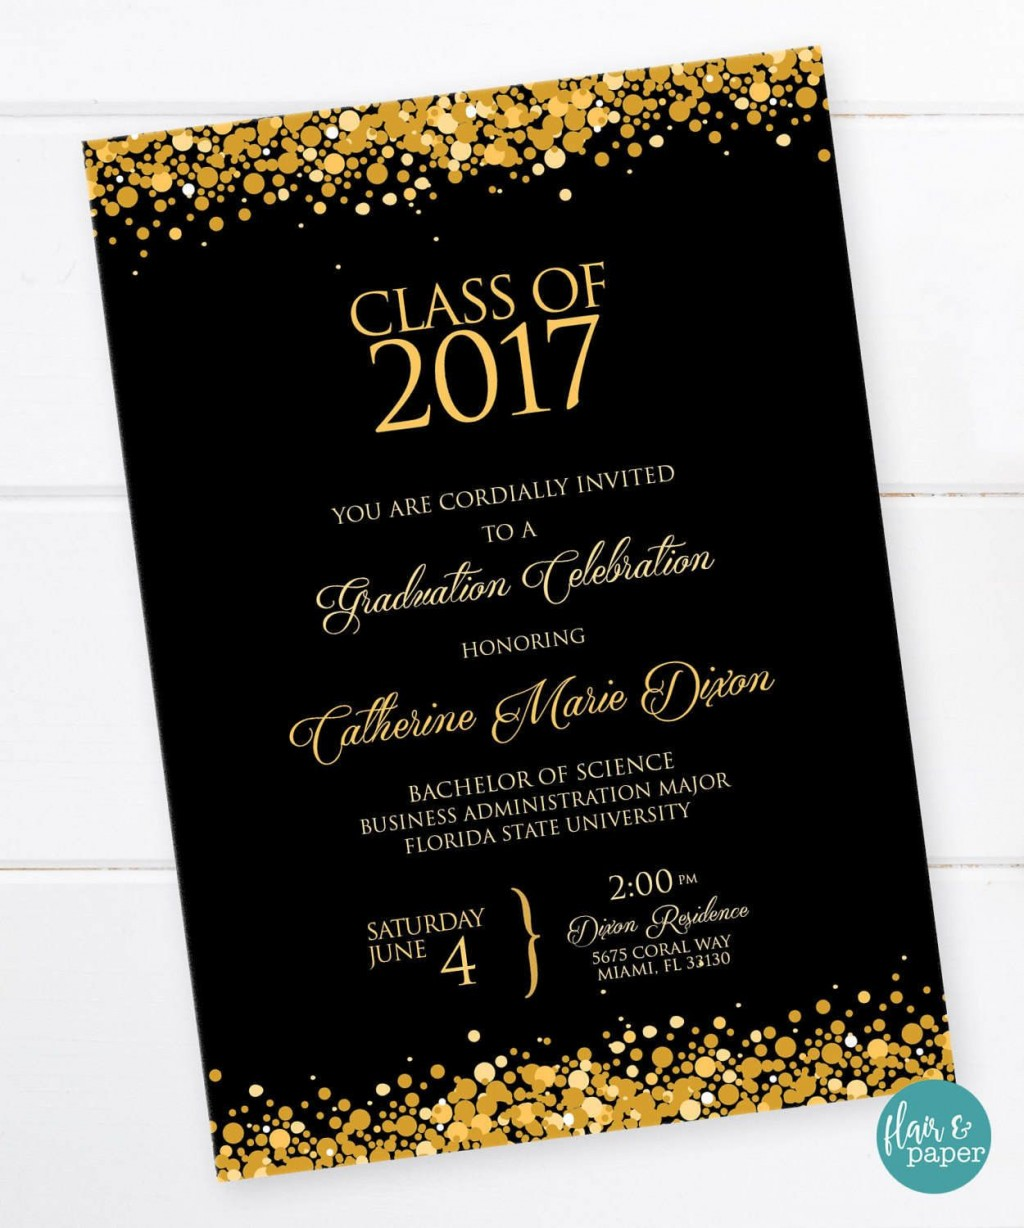 001 Shocking College Graduation Invitation Template Idea  Templates Free PartyLarge